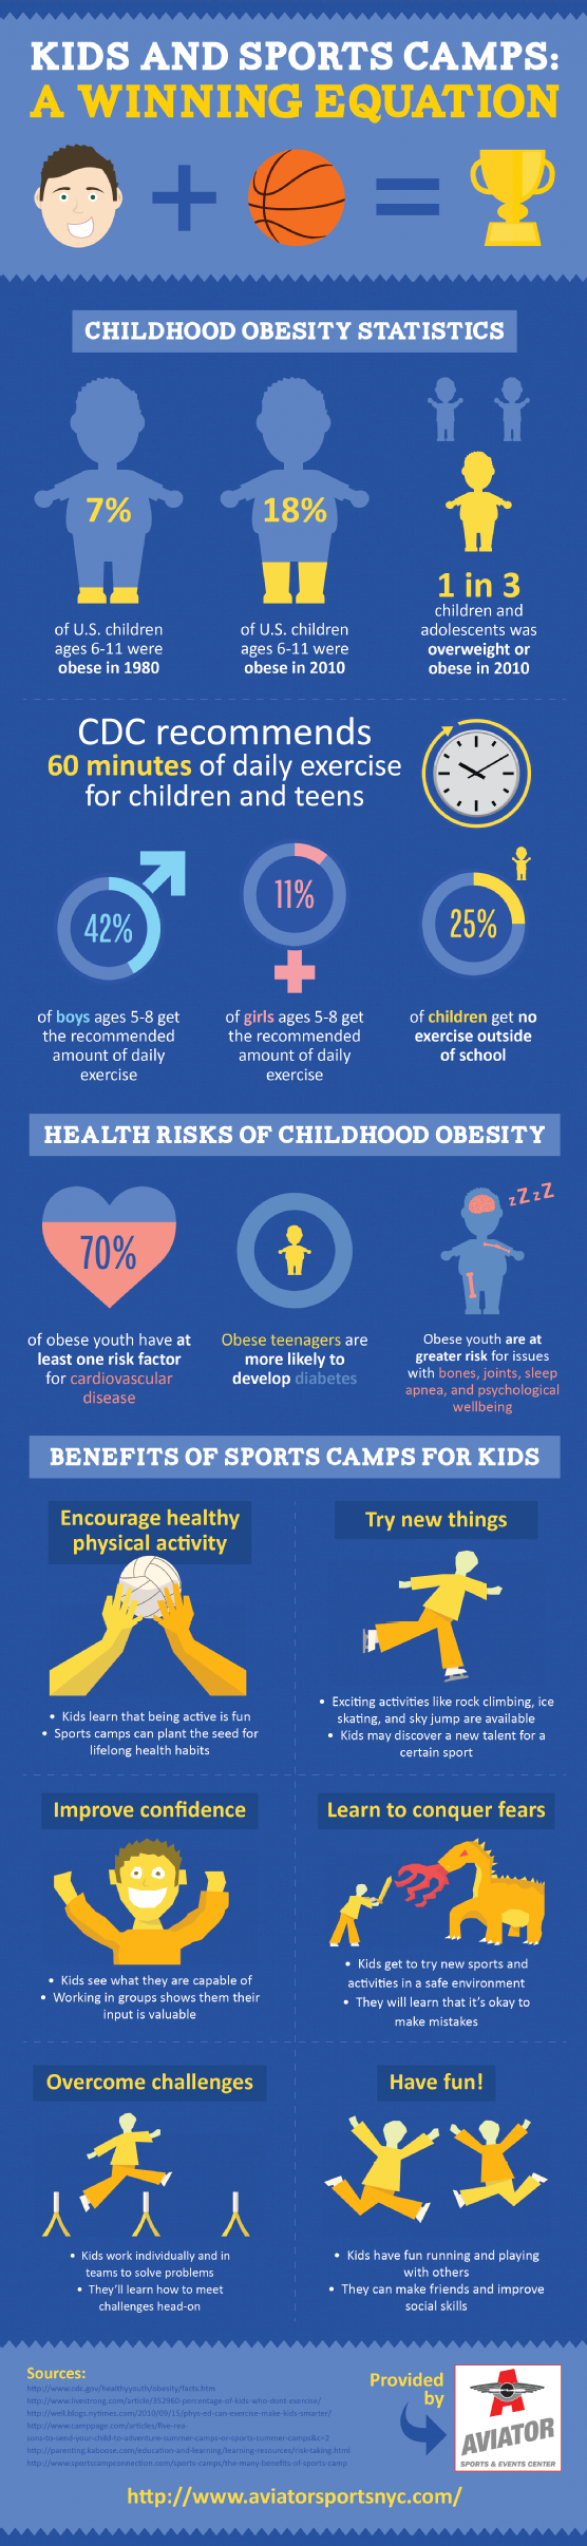 Kids and Sports Camps: A Winning Equation